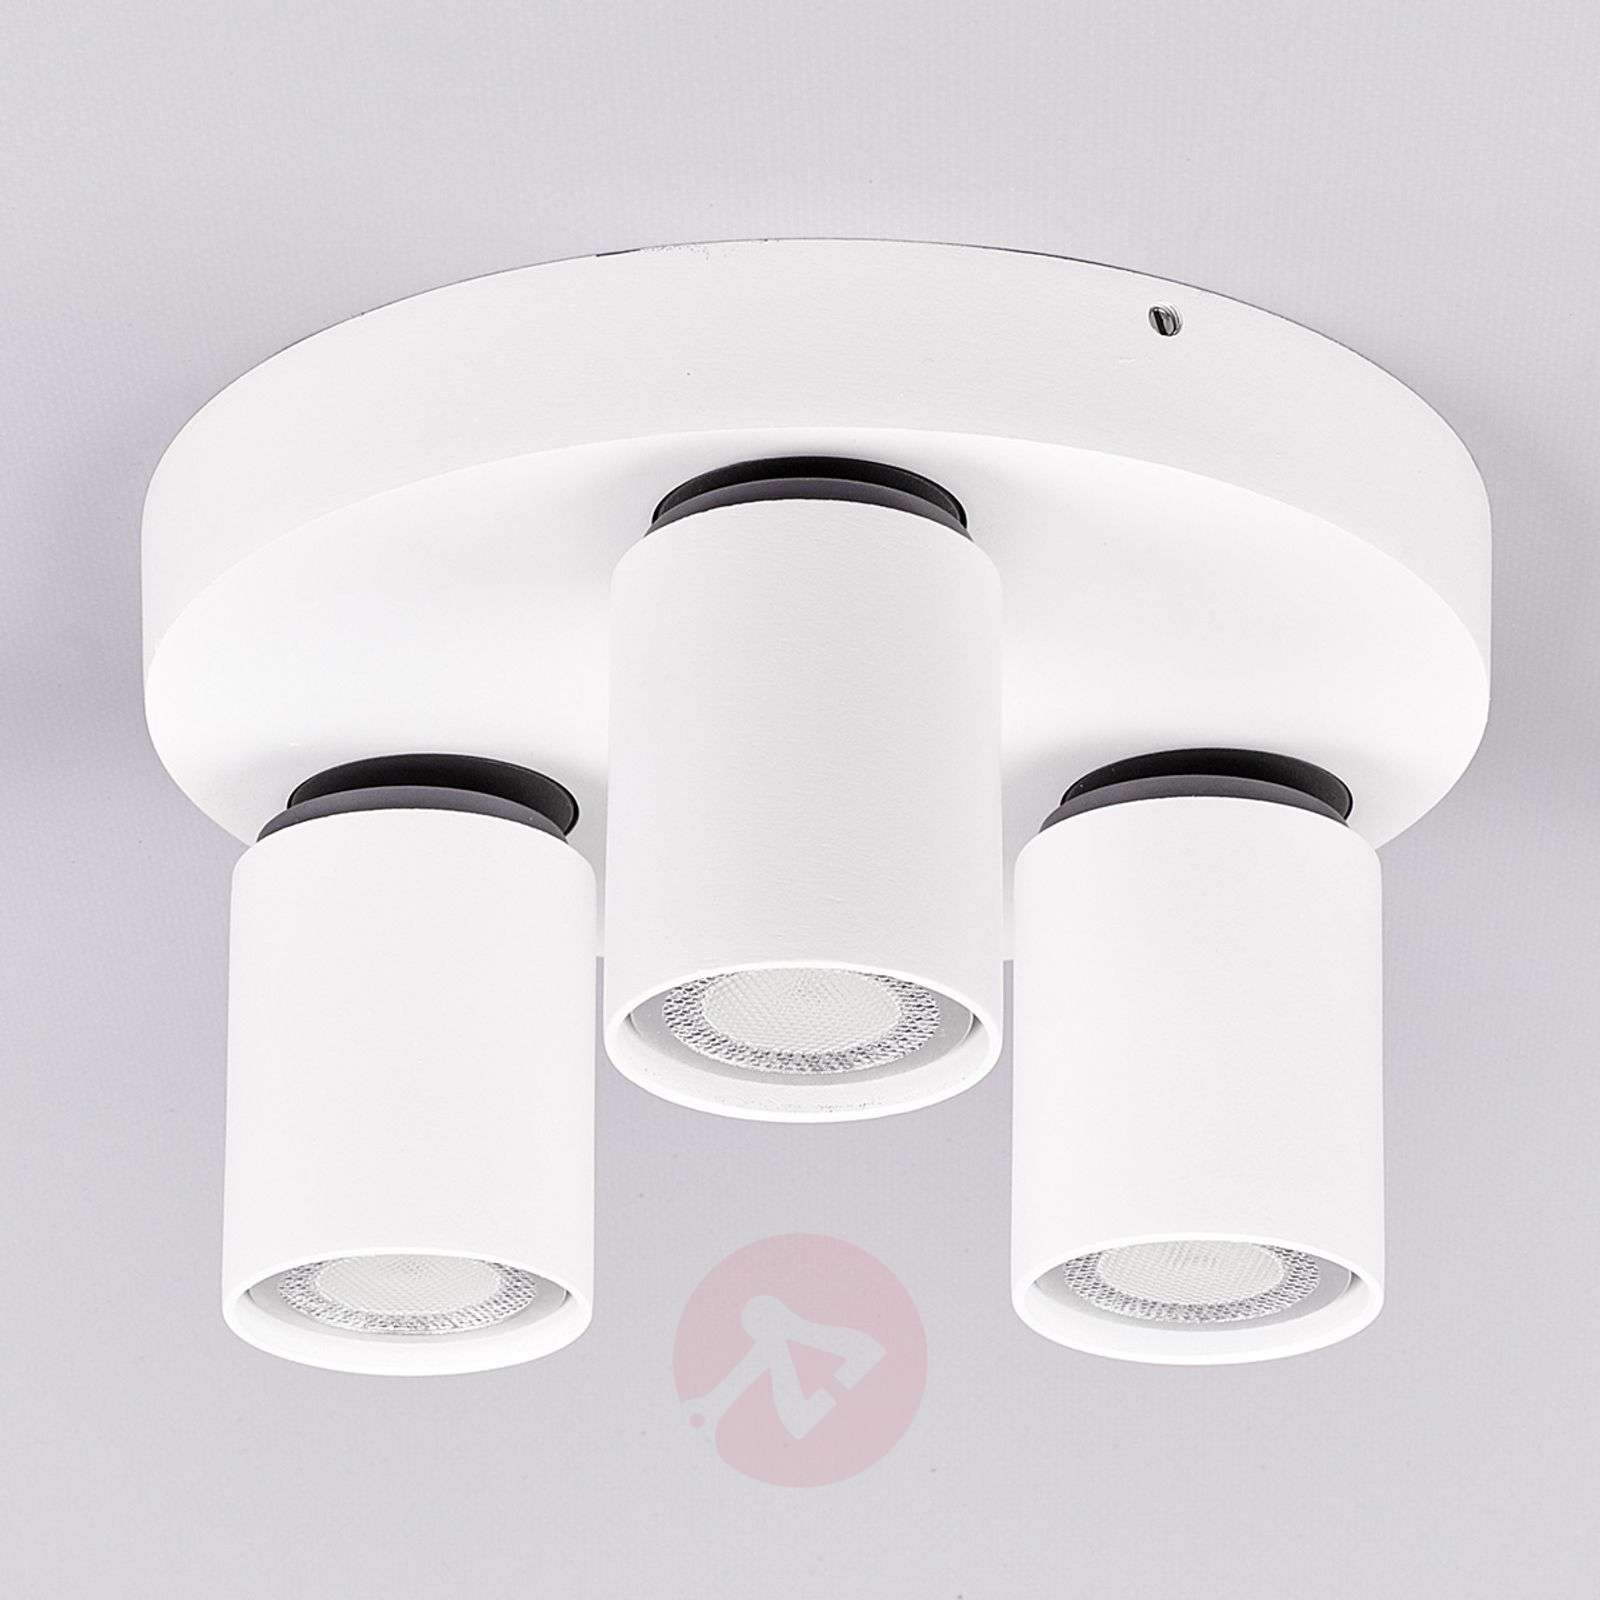 Sean 3-bulb round LED ceiling spotlight-9975021-01